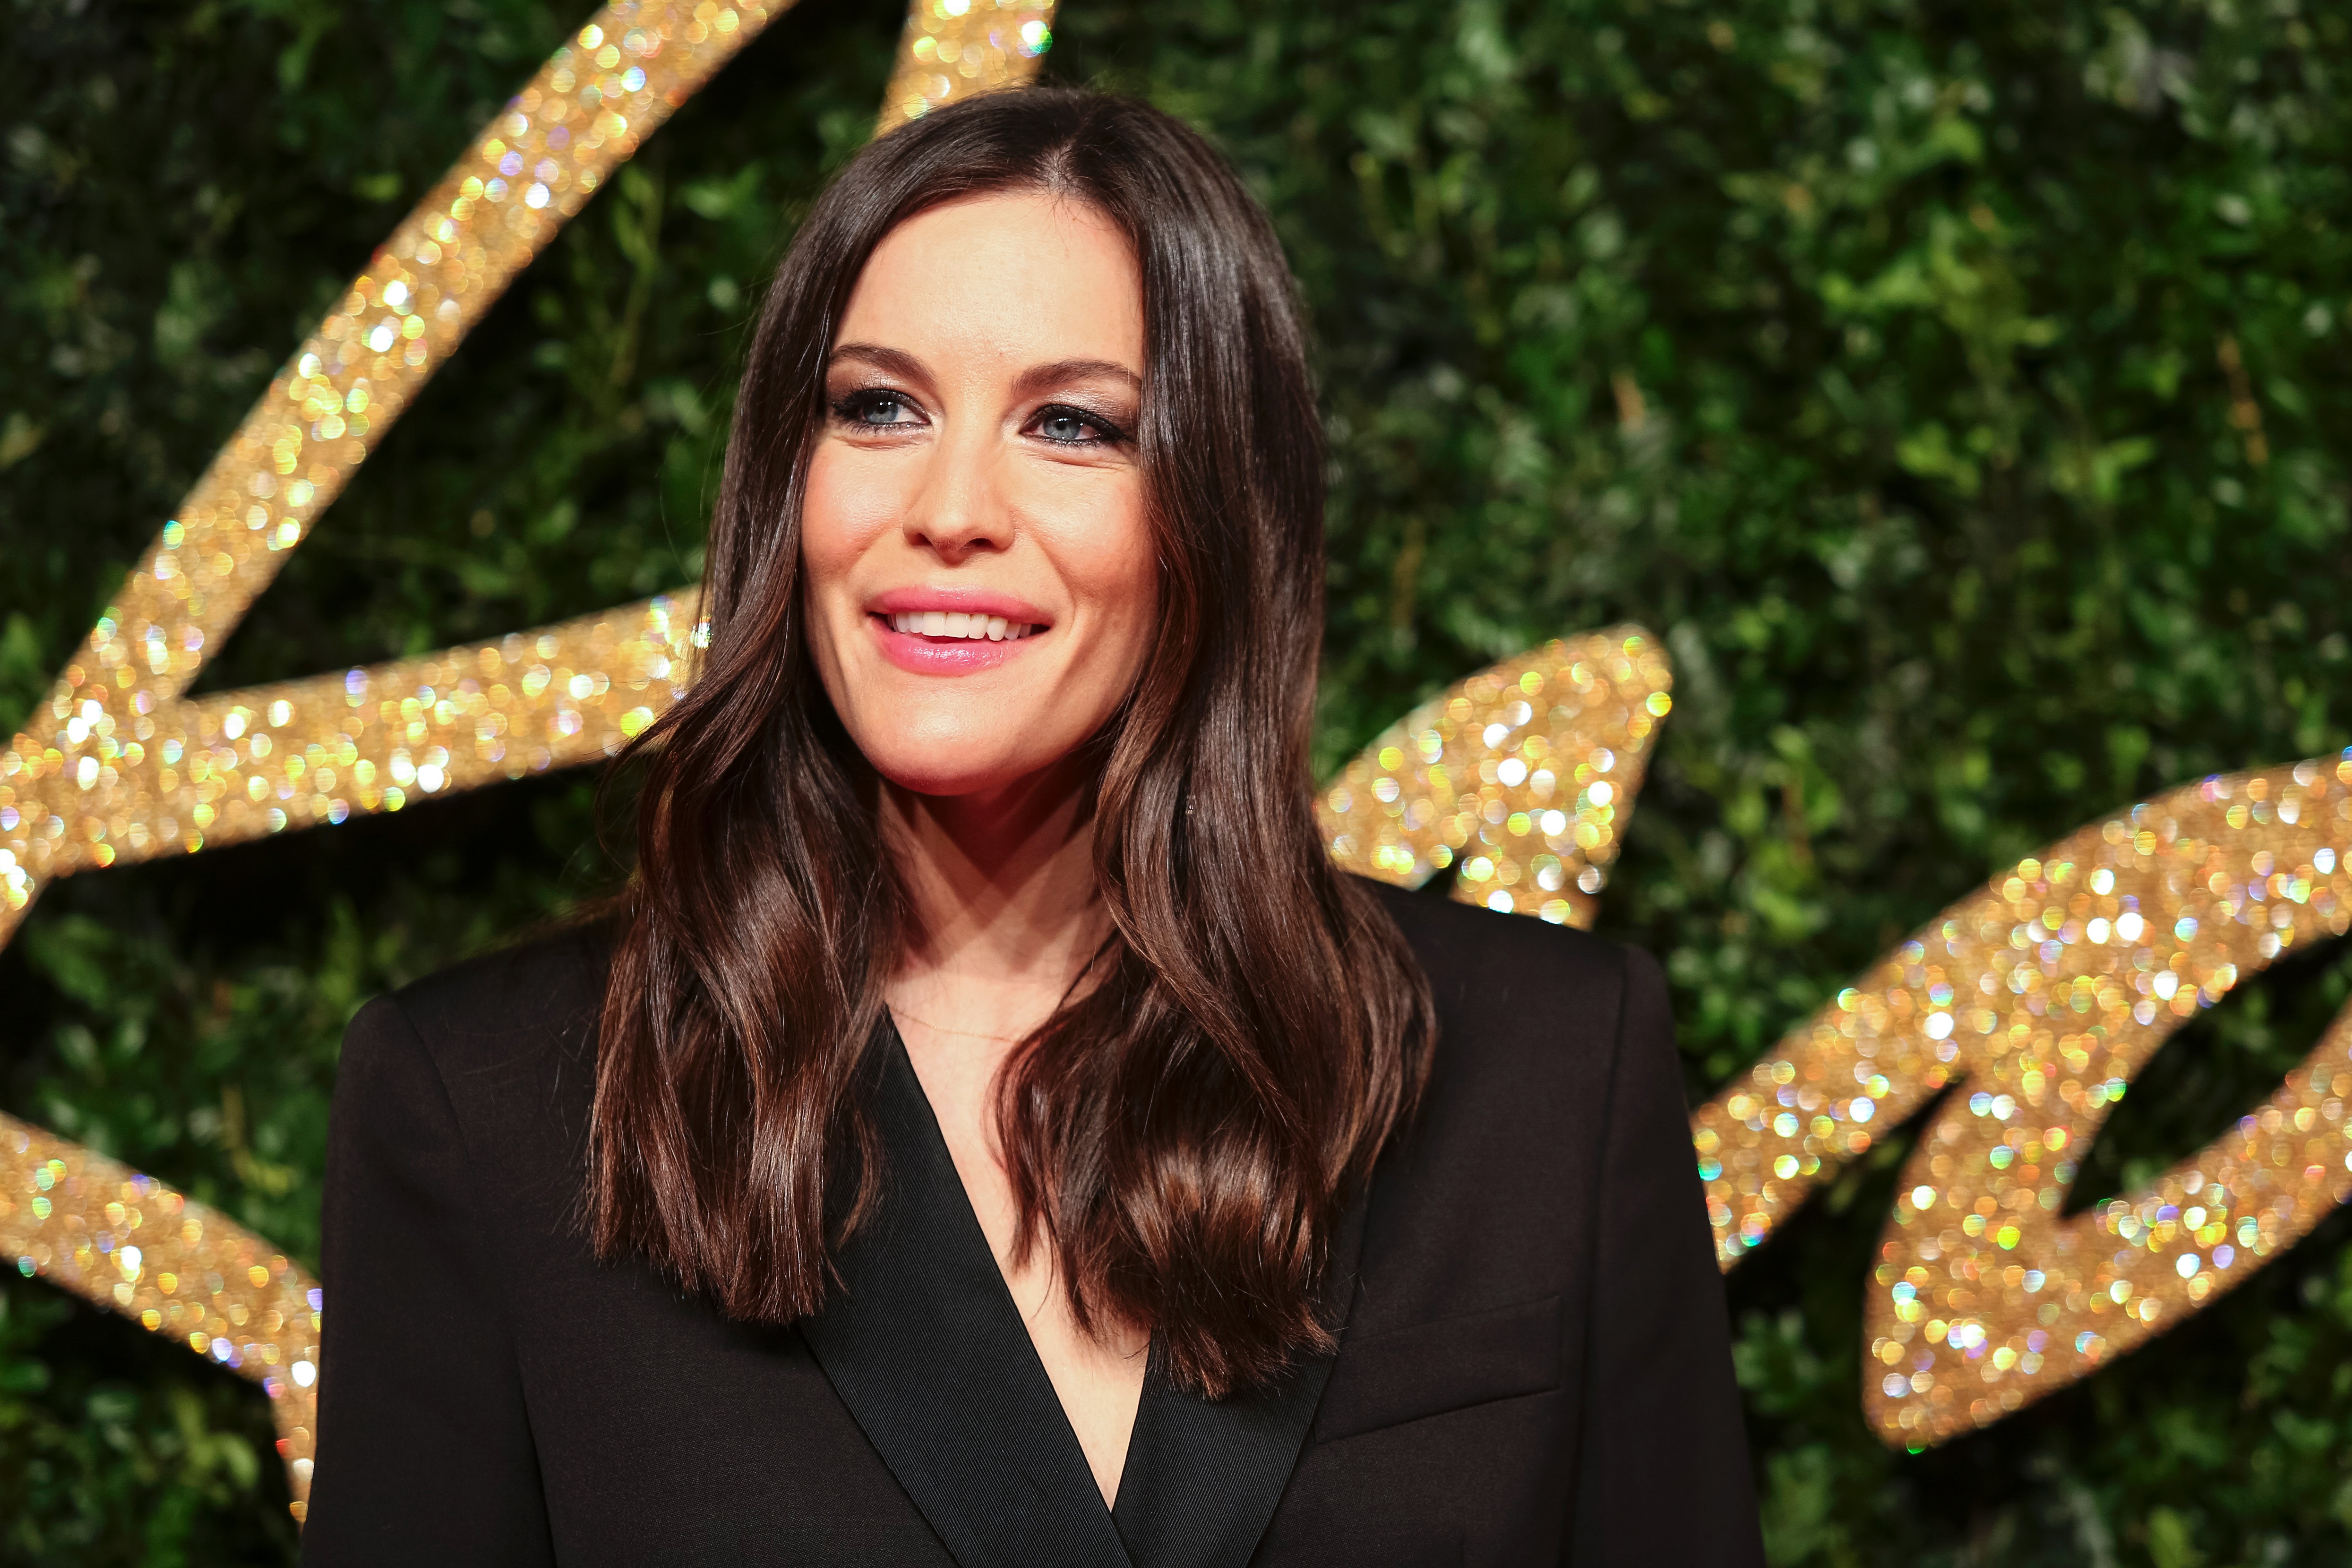 Liv Tyler Is Giving Us All The Feels With Her Sweet Snaps